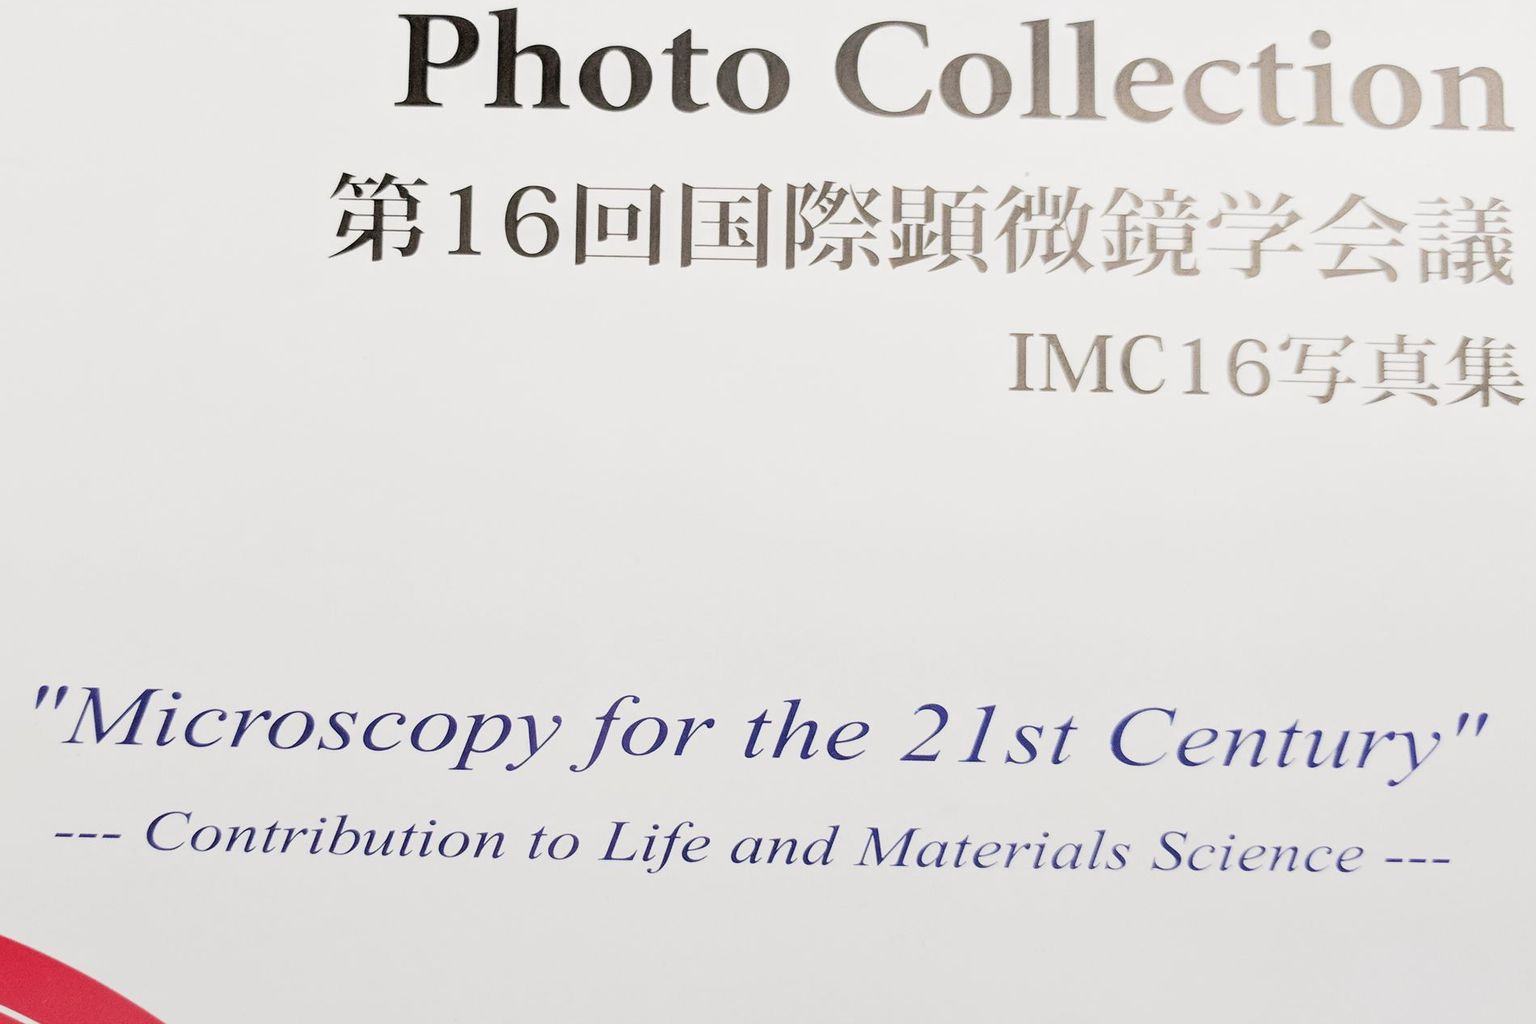 International microscopy conference